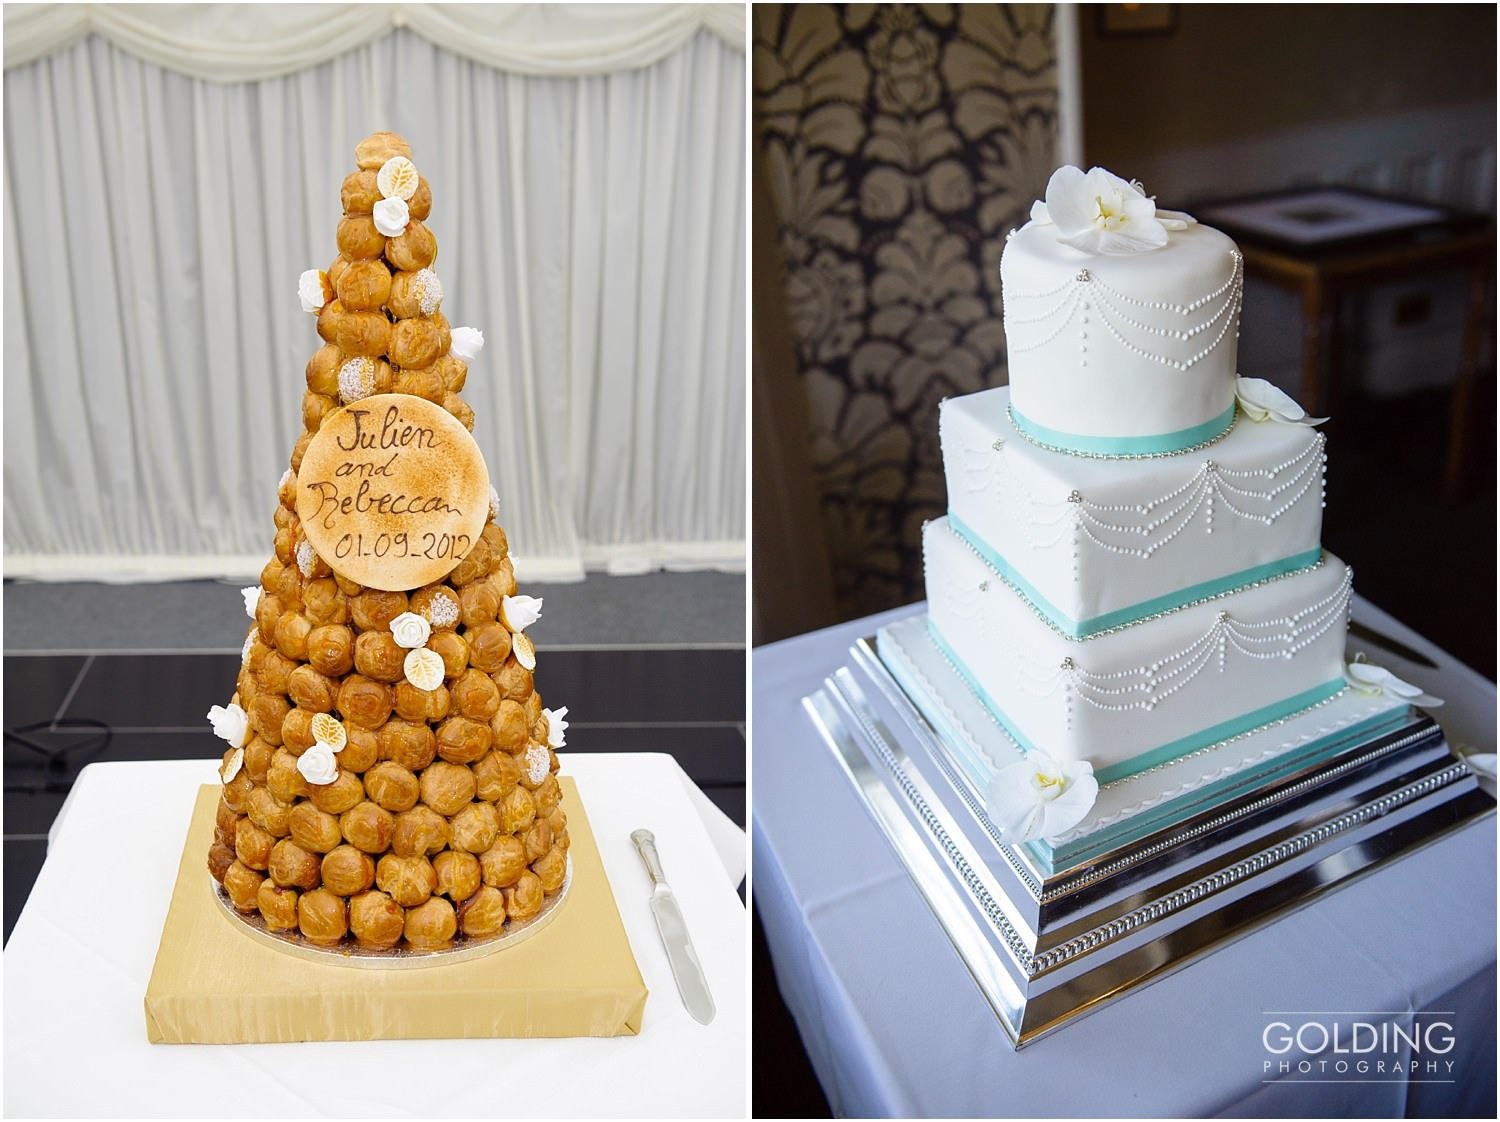 Wedding cakes in North Wales